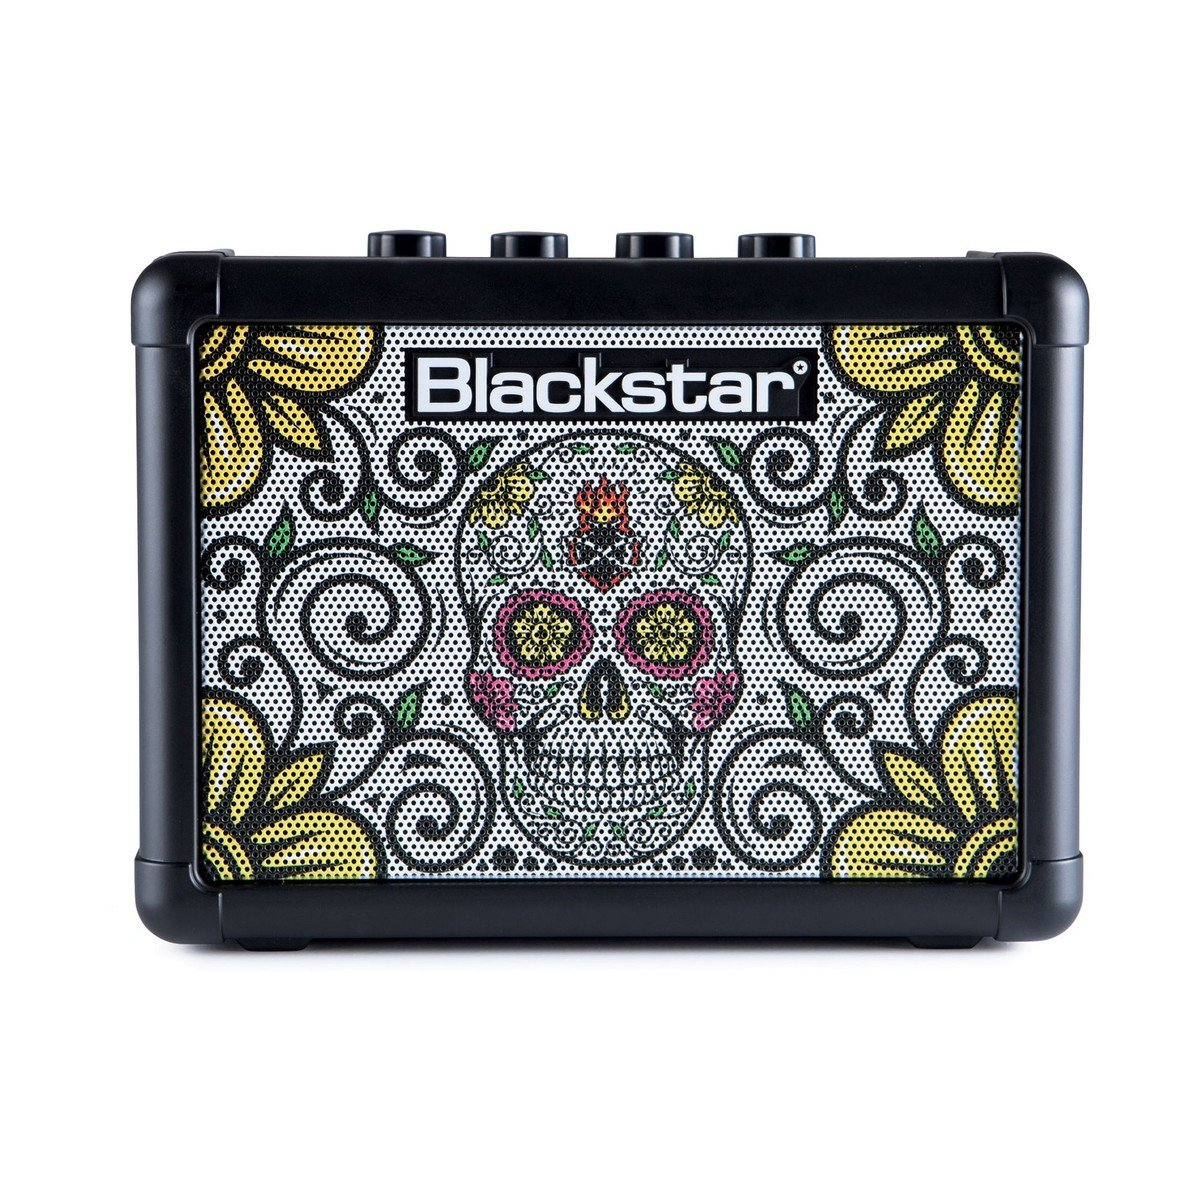 Blackstar Fly 3 Mini Guitar Amp - Sugar Skulls